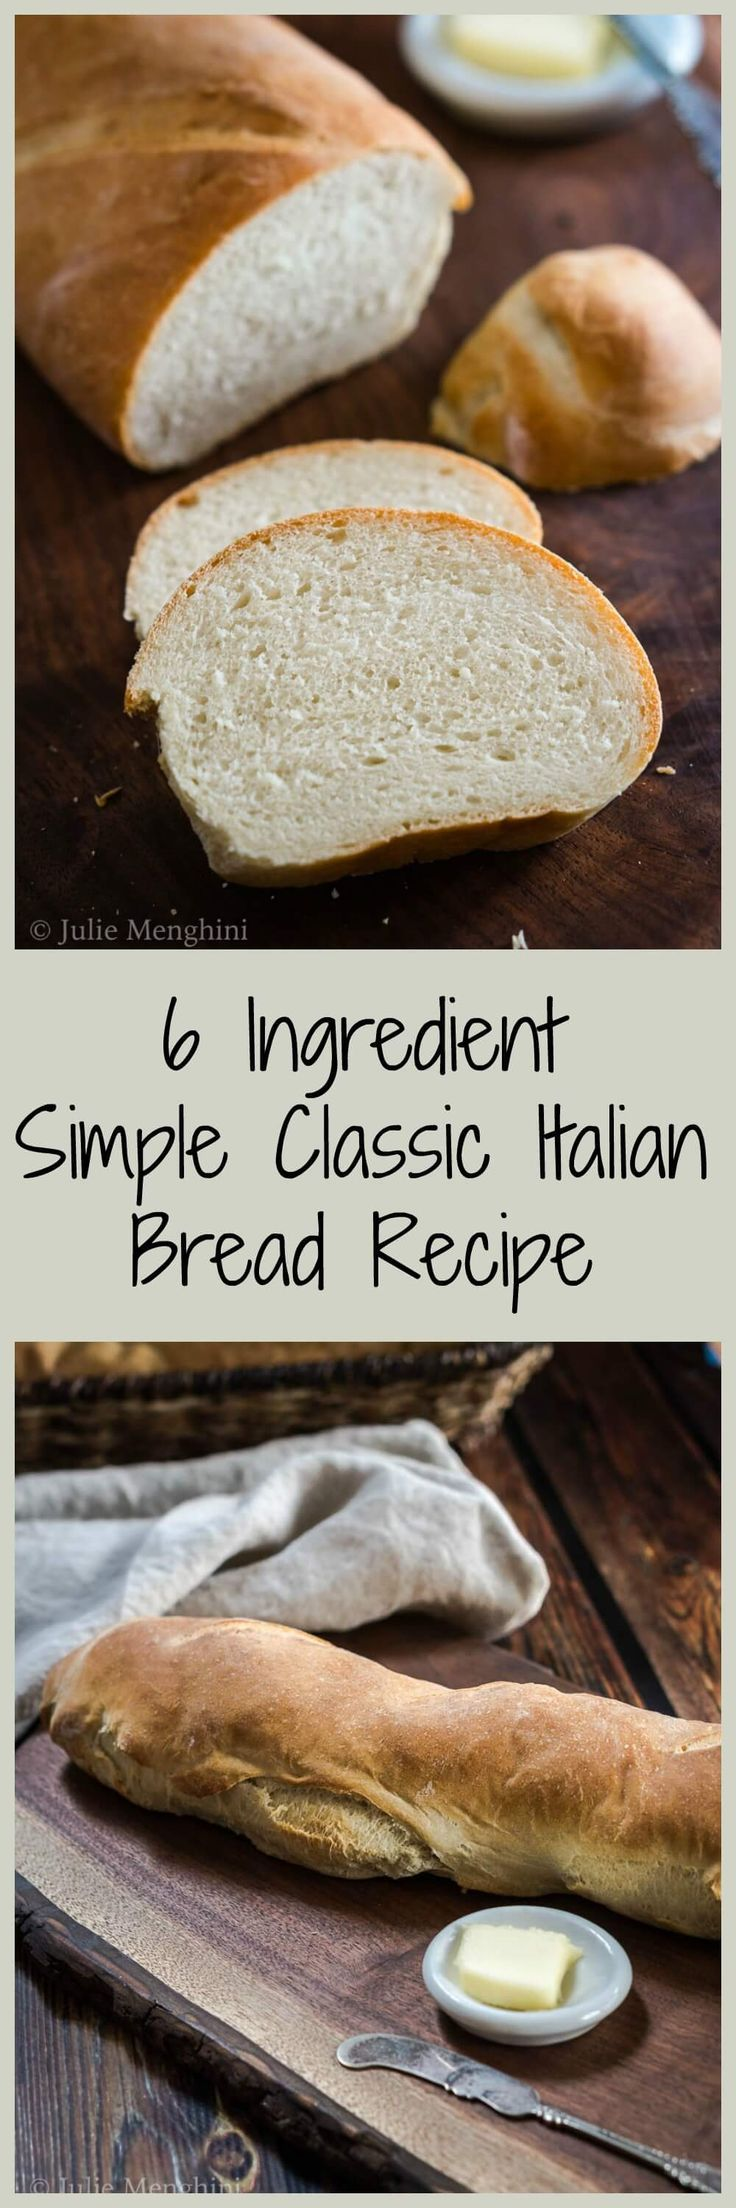 Homemade bread doesn't have to be hard or take all day. This Classic Italian Bread recipe uses only 6 ingredients and is ready in under two hours. | HostessAtHeart.com via @HostessAtHeart